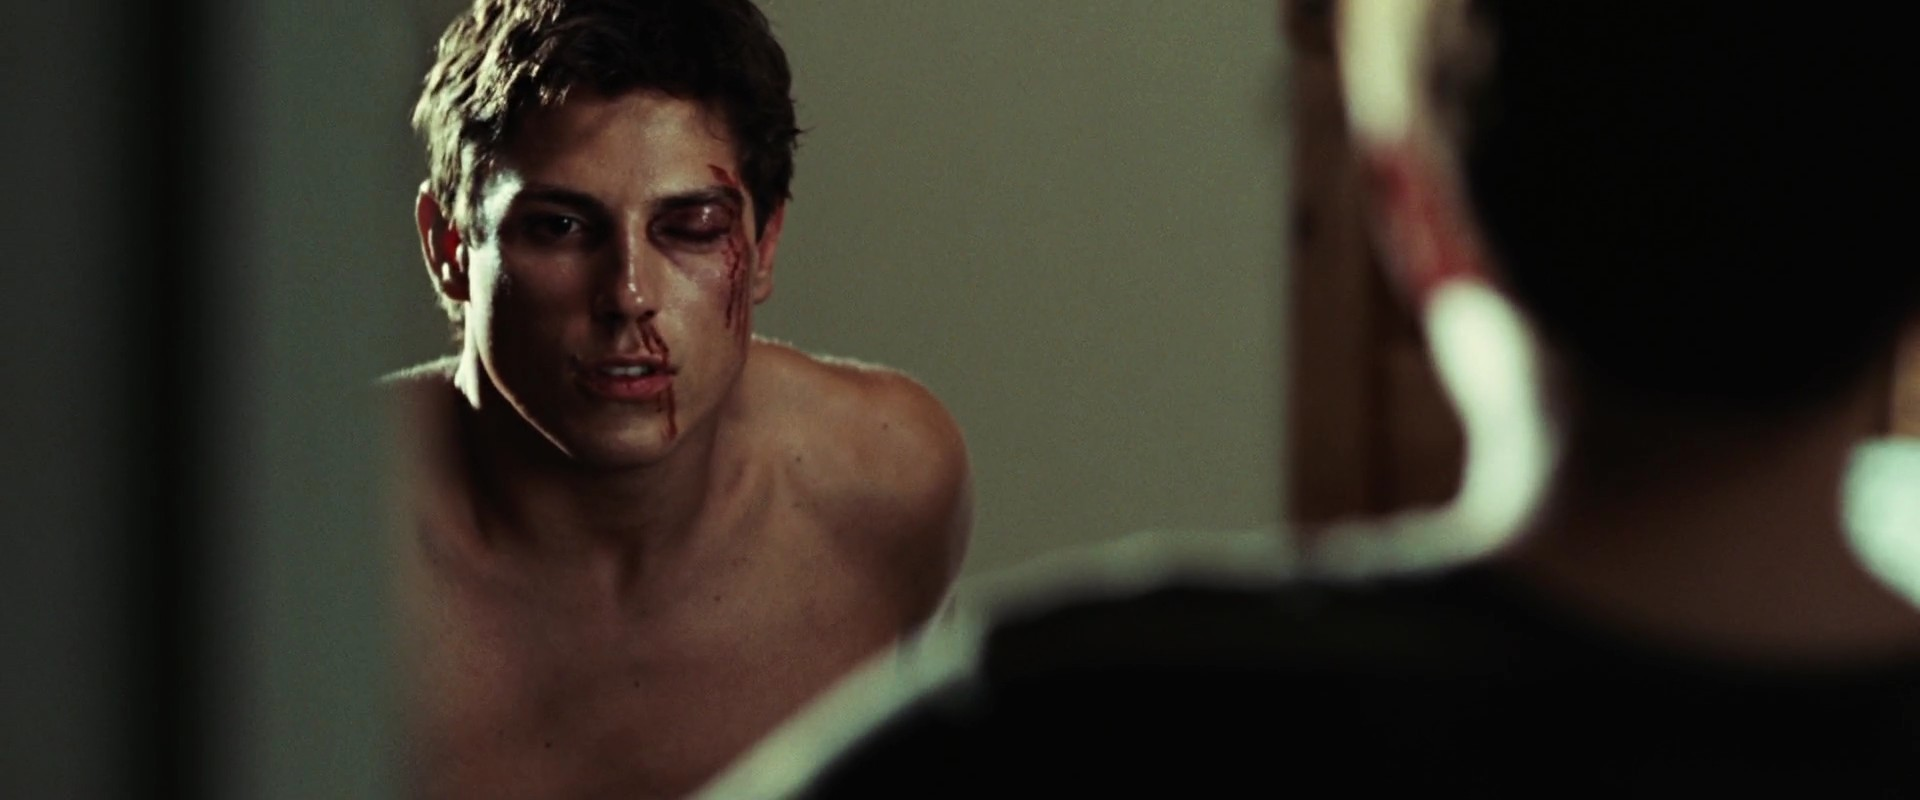 sean faris never back down male models picture